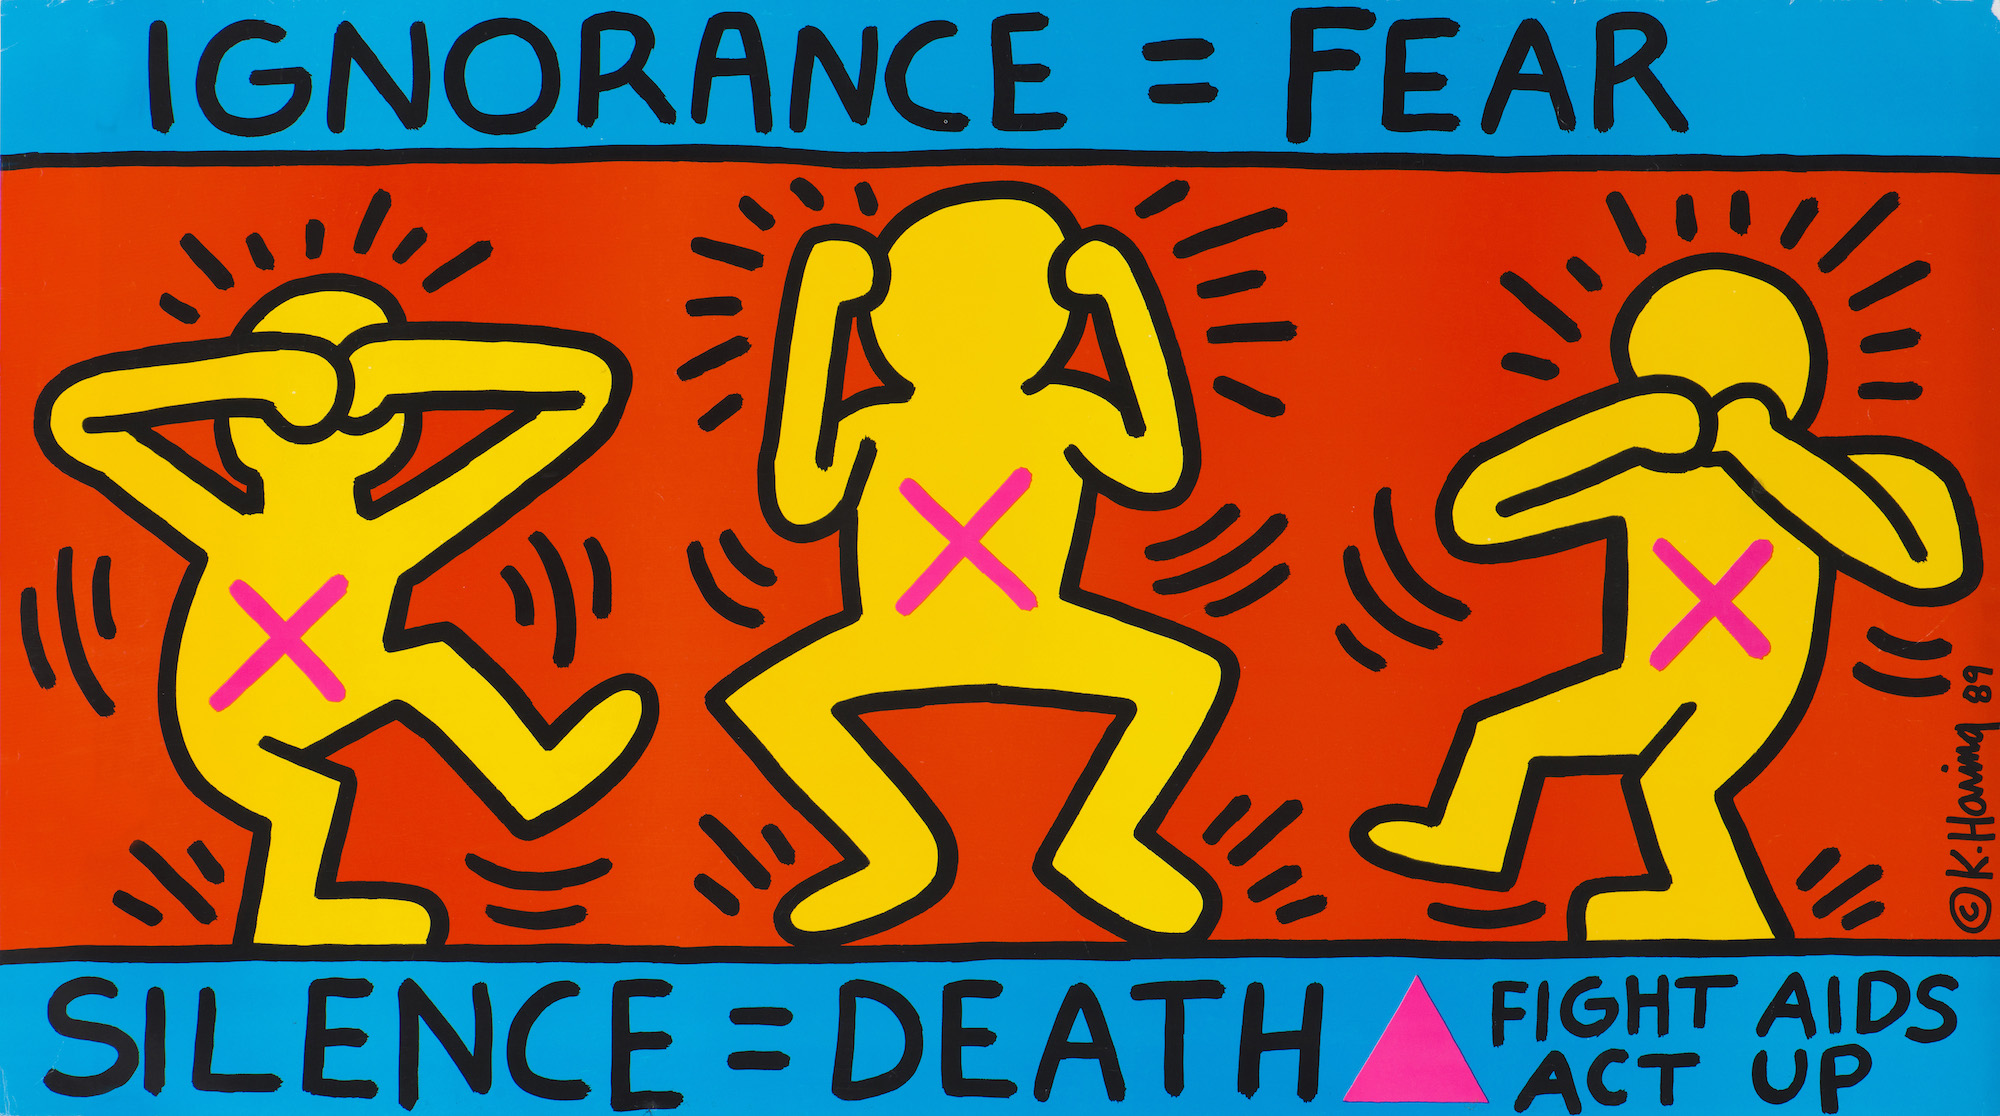 Keith Haring, Ignorance = Fear, 1989. © Keith Haring Foundation/ Collection Noirmontartproduction, Paris